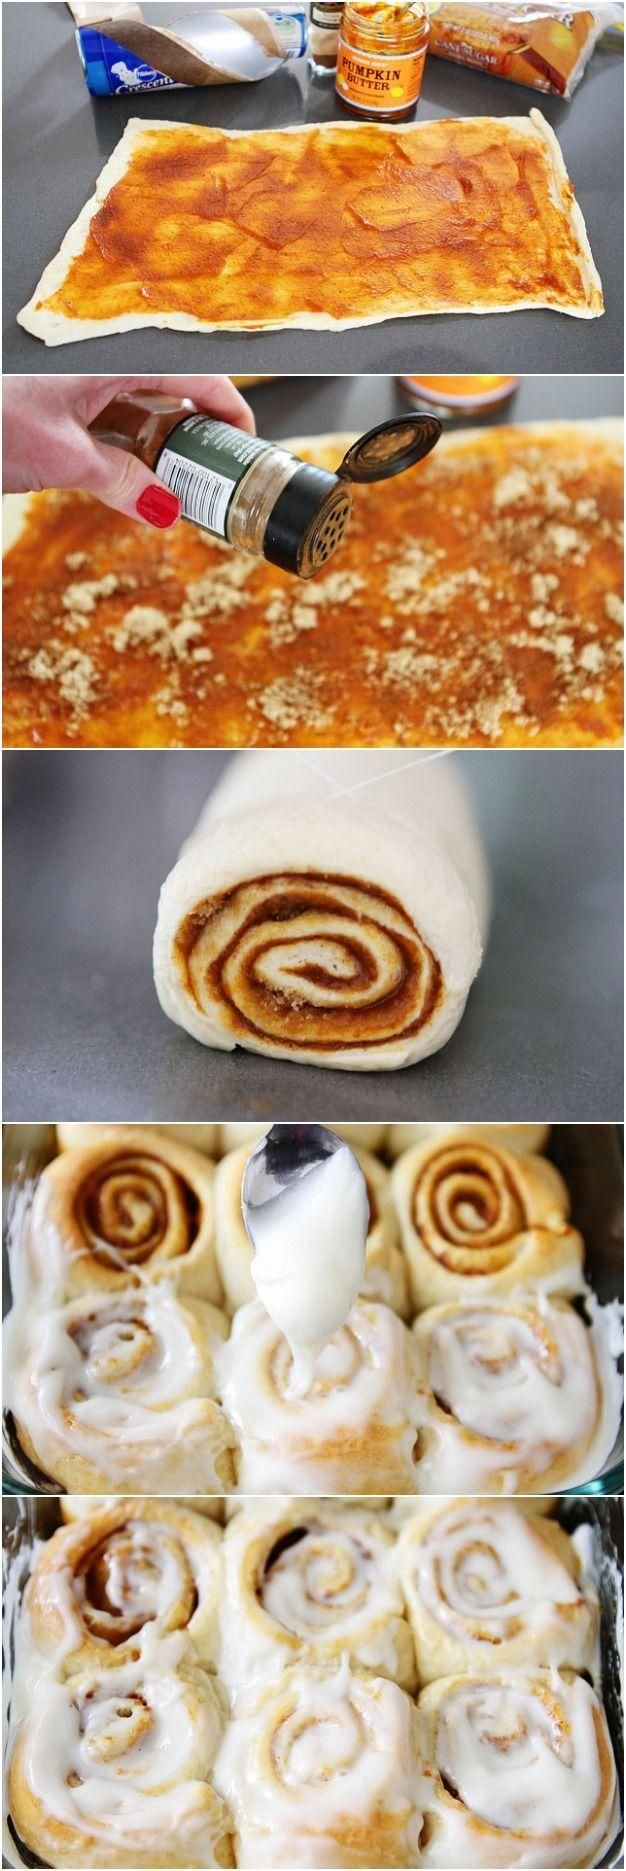 I think I'll try these Pumpkin Cinnamon Rolls with my #Ezekiel dough